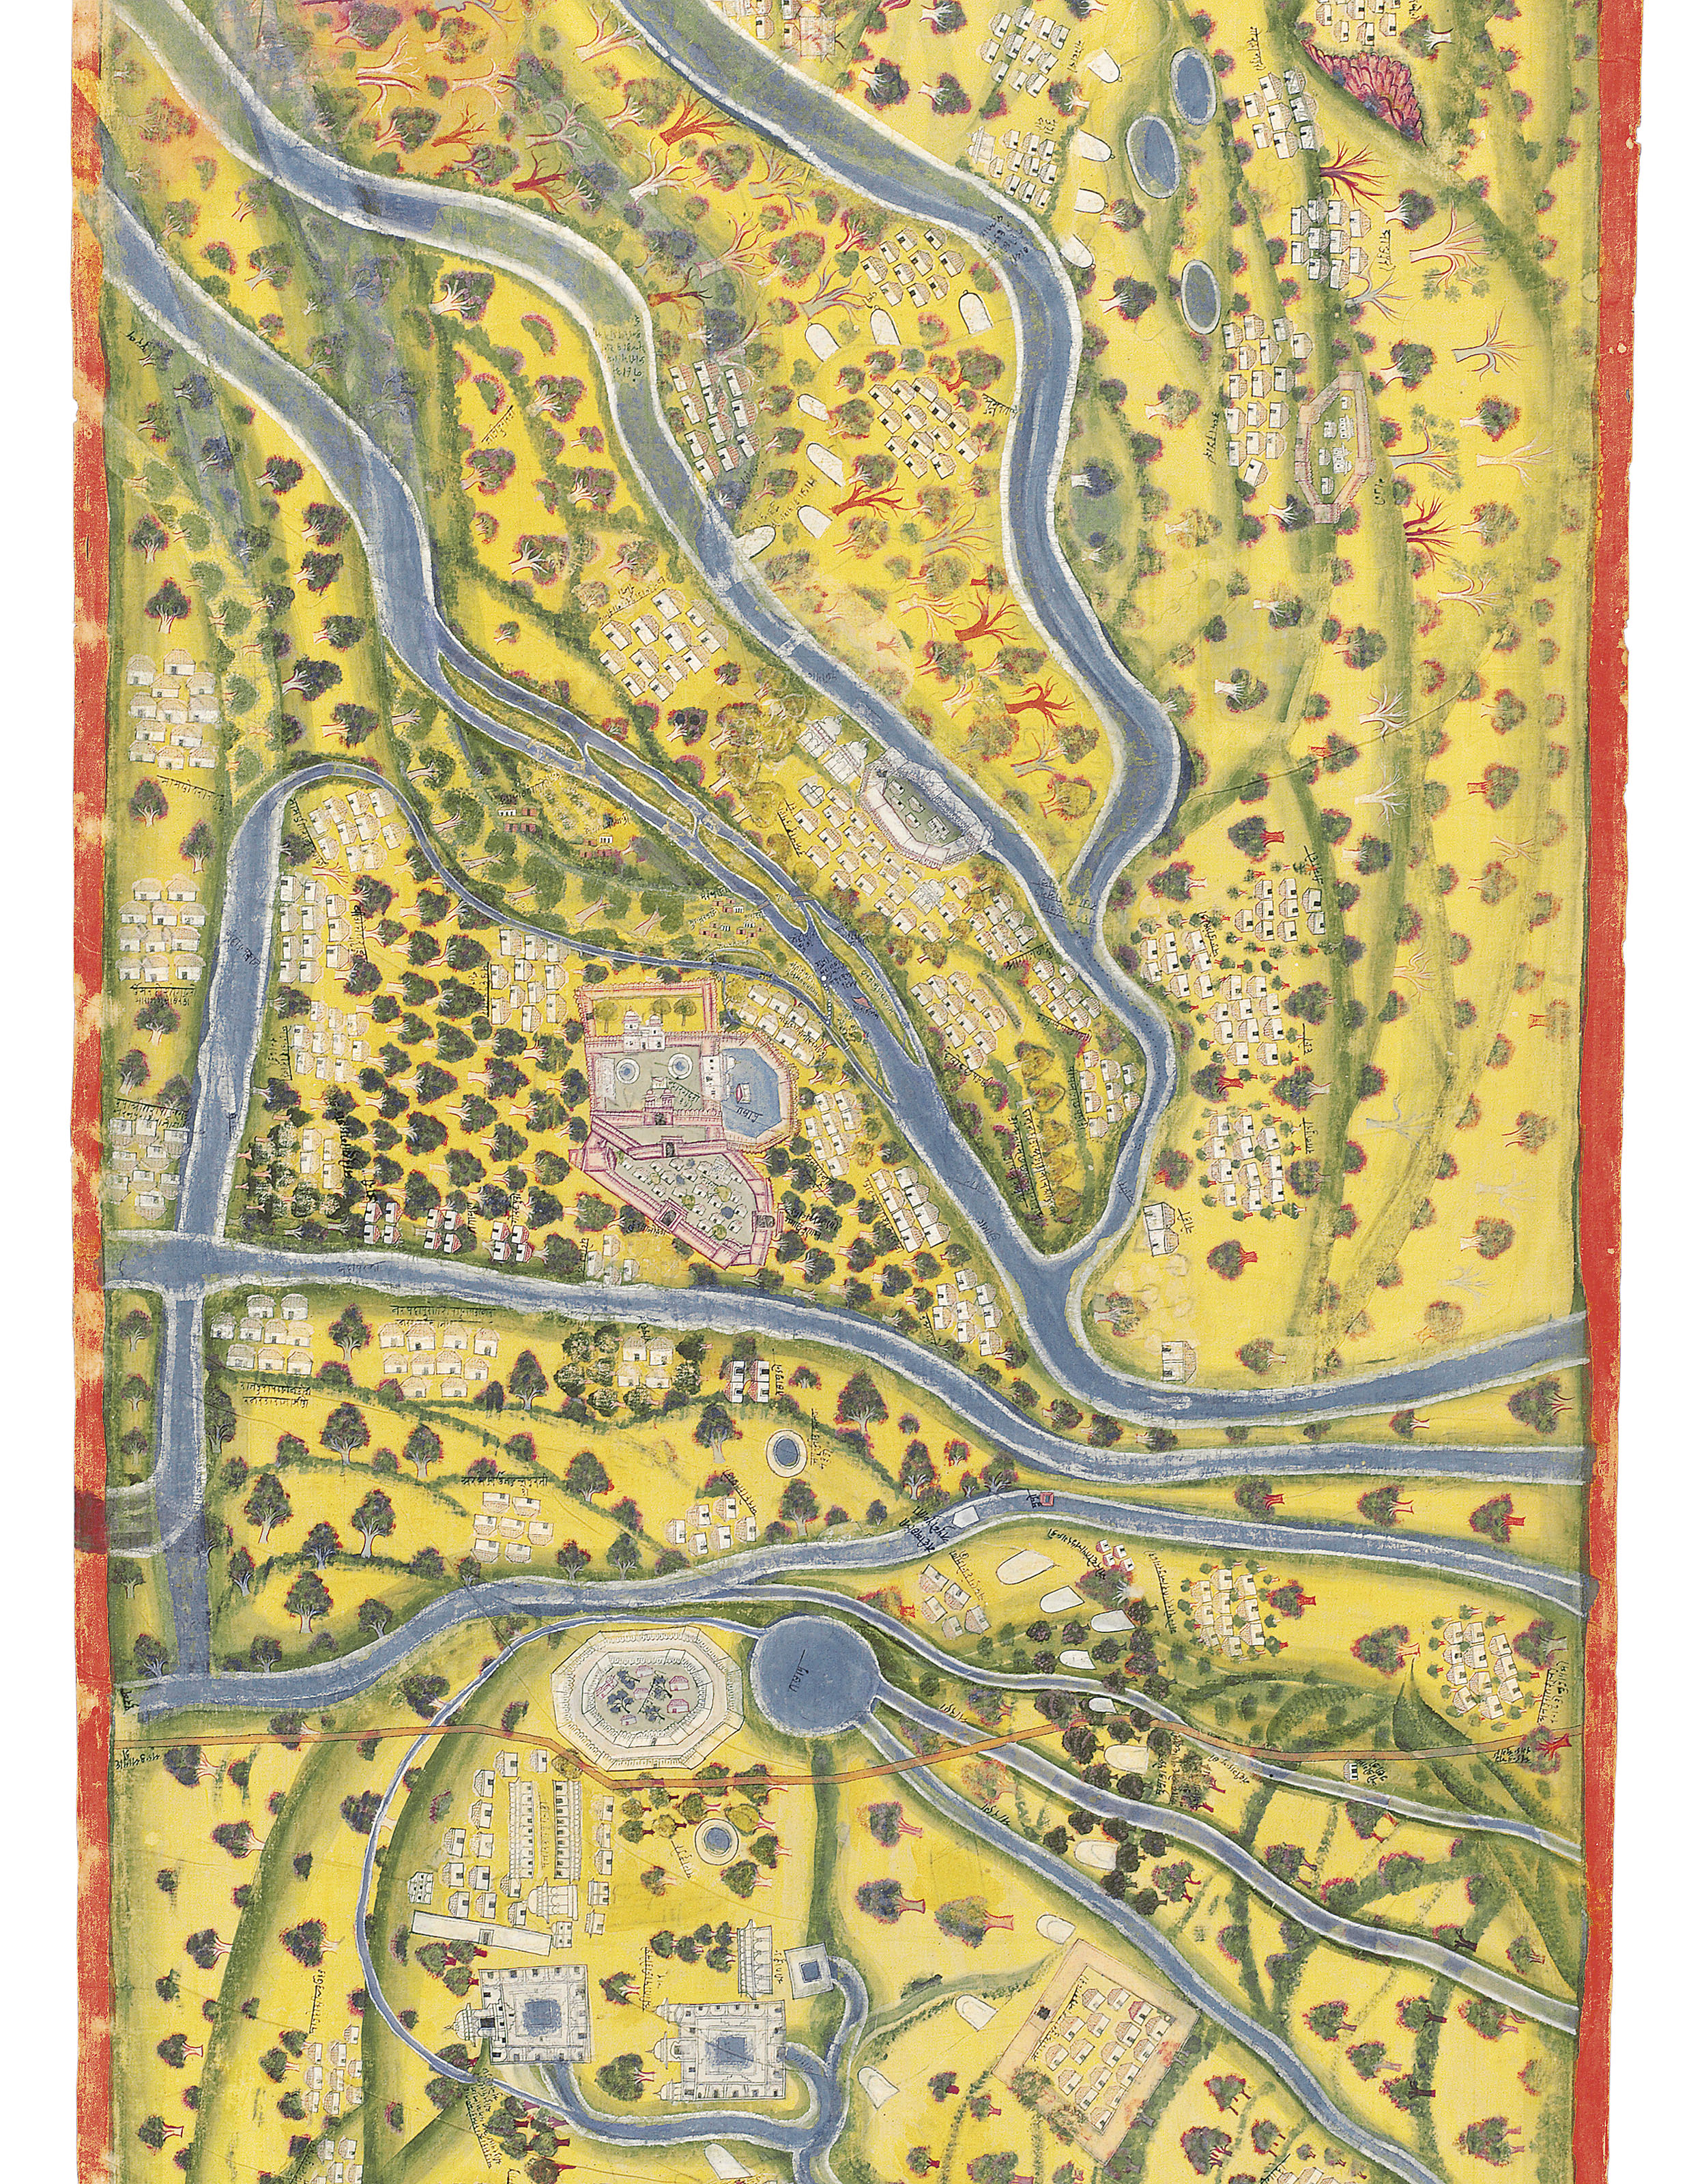 AN IMPORTANT AND VERY LARGE MAP OF PILGRIM SITES ALONG THE GANGES (YATRA PATHA)